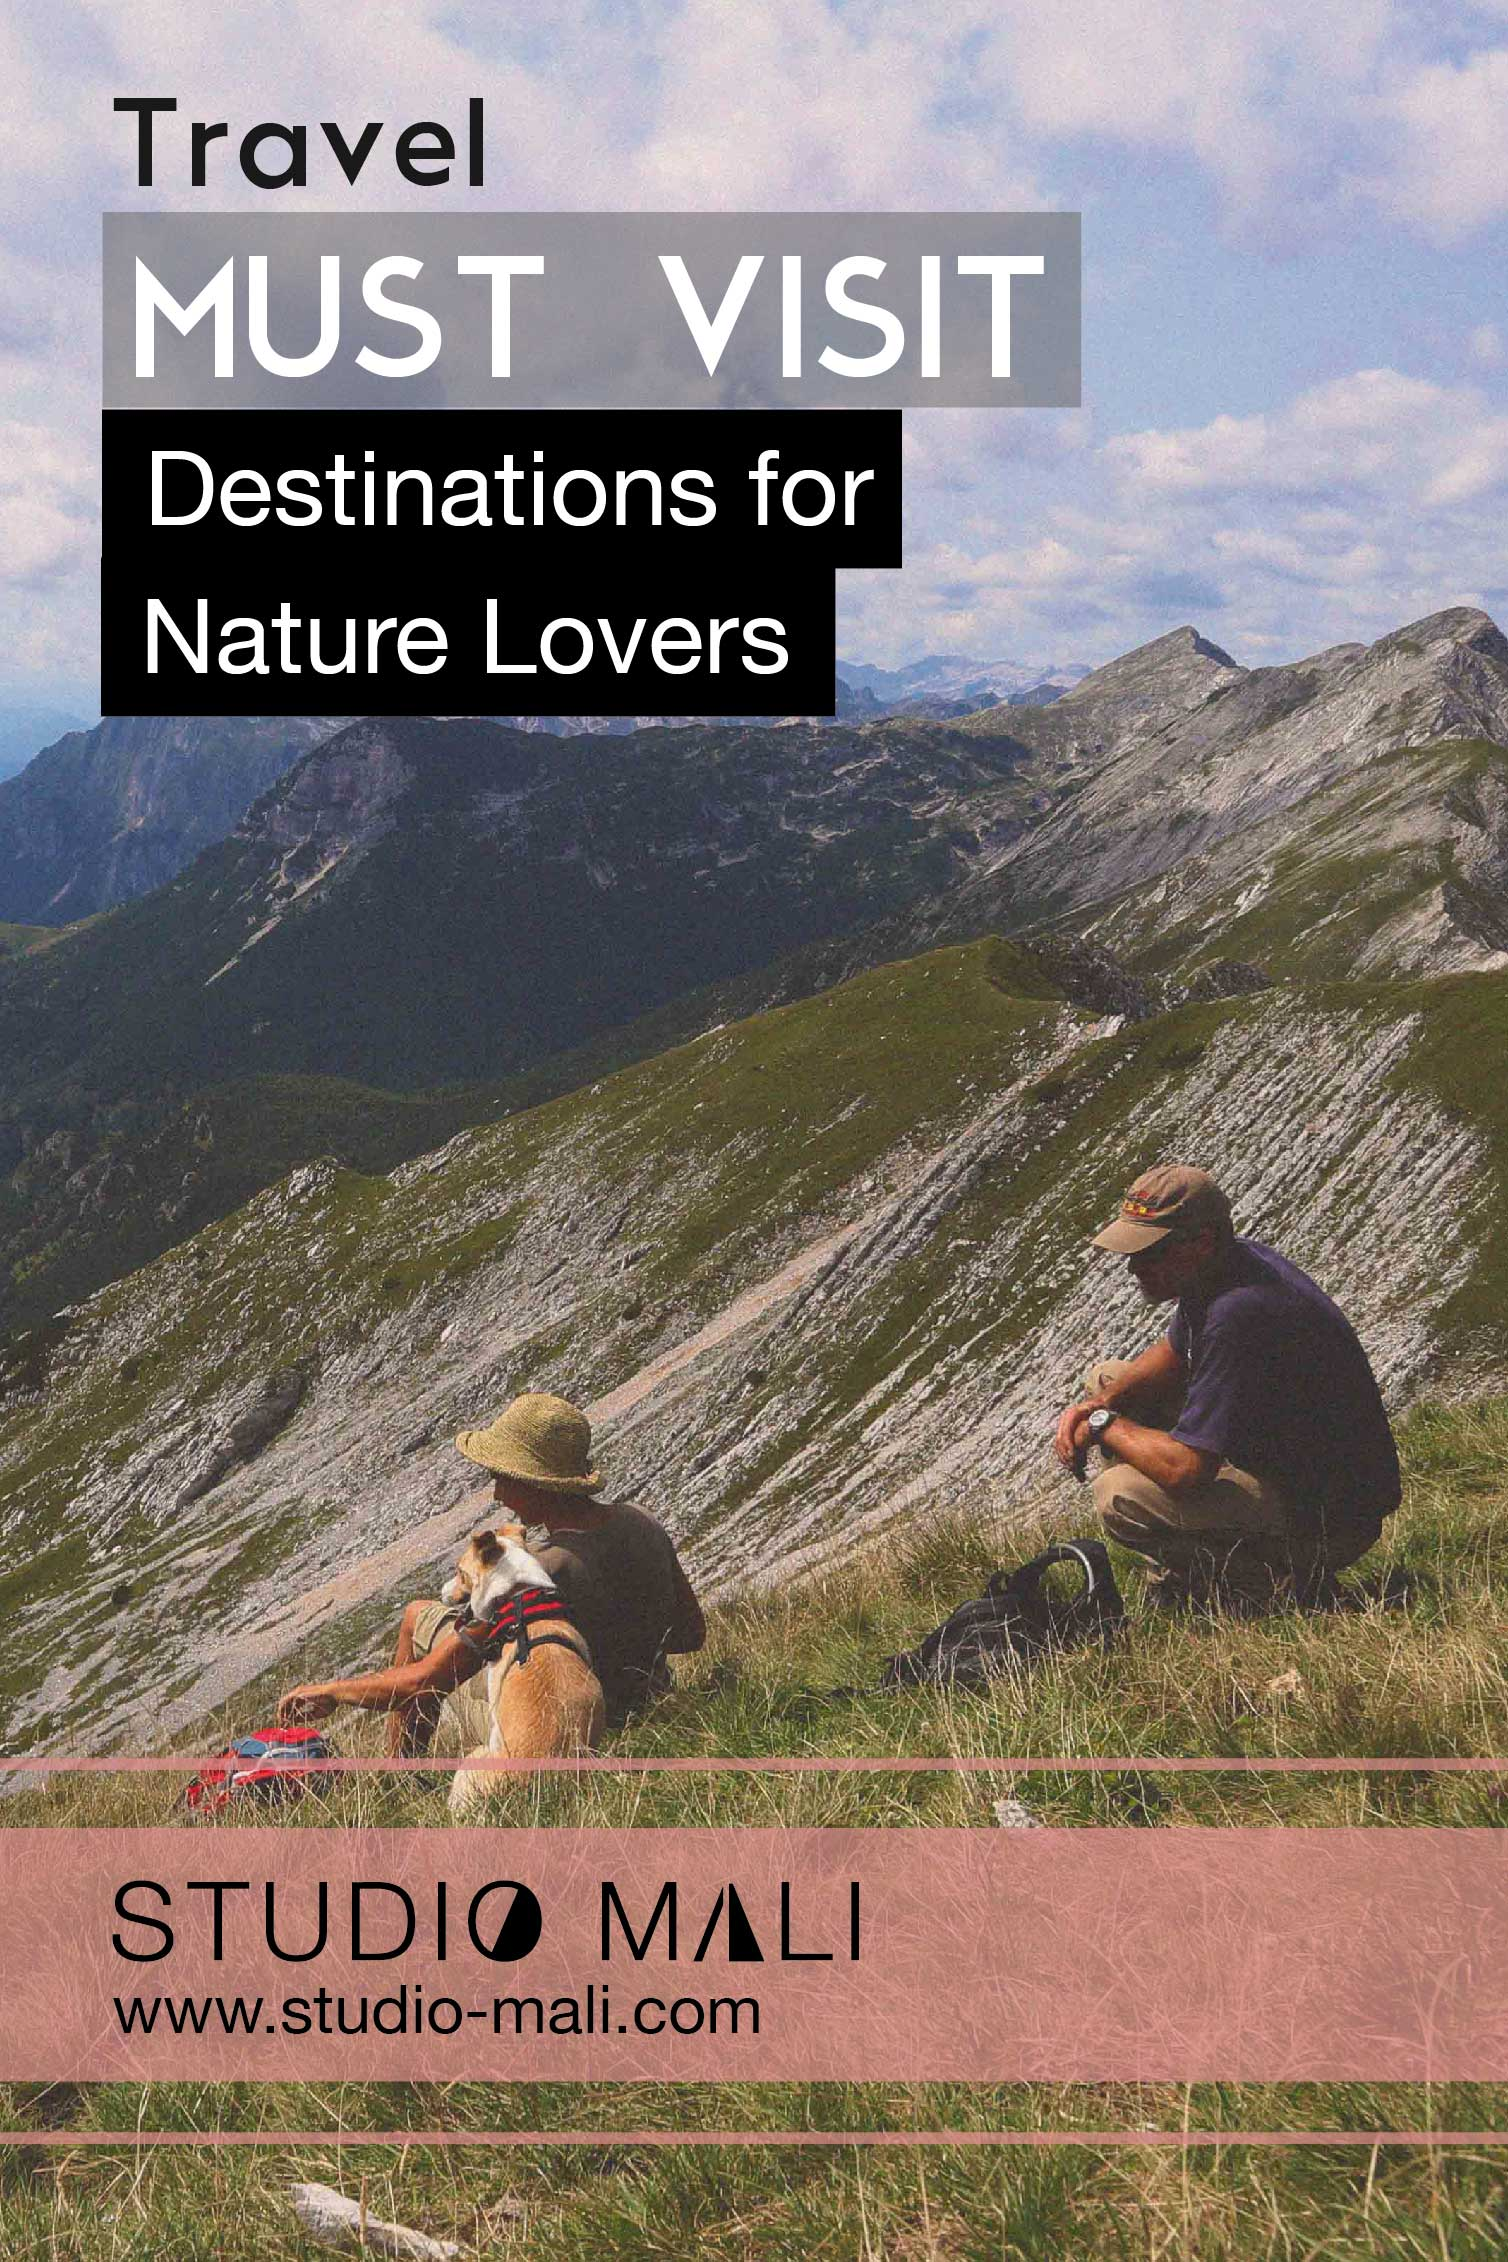 Must Visit Destinations For Nature Lovers, by Studio Mali.jpg